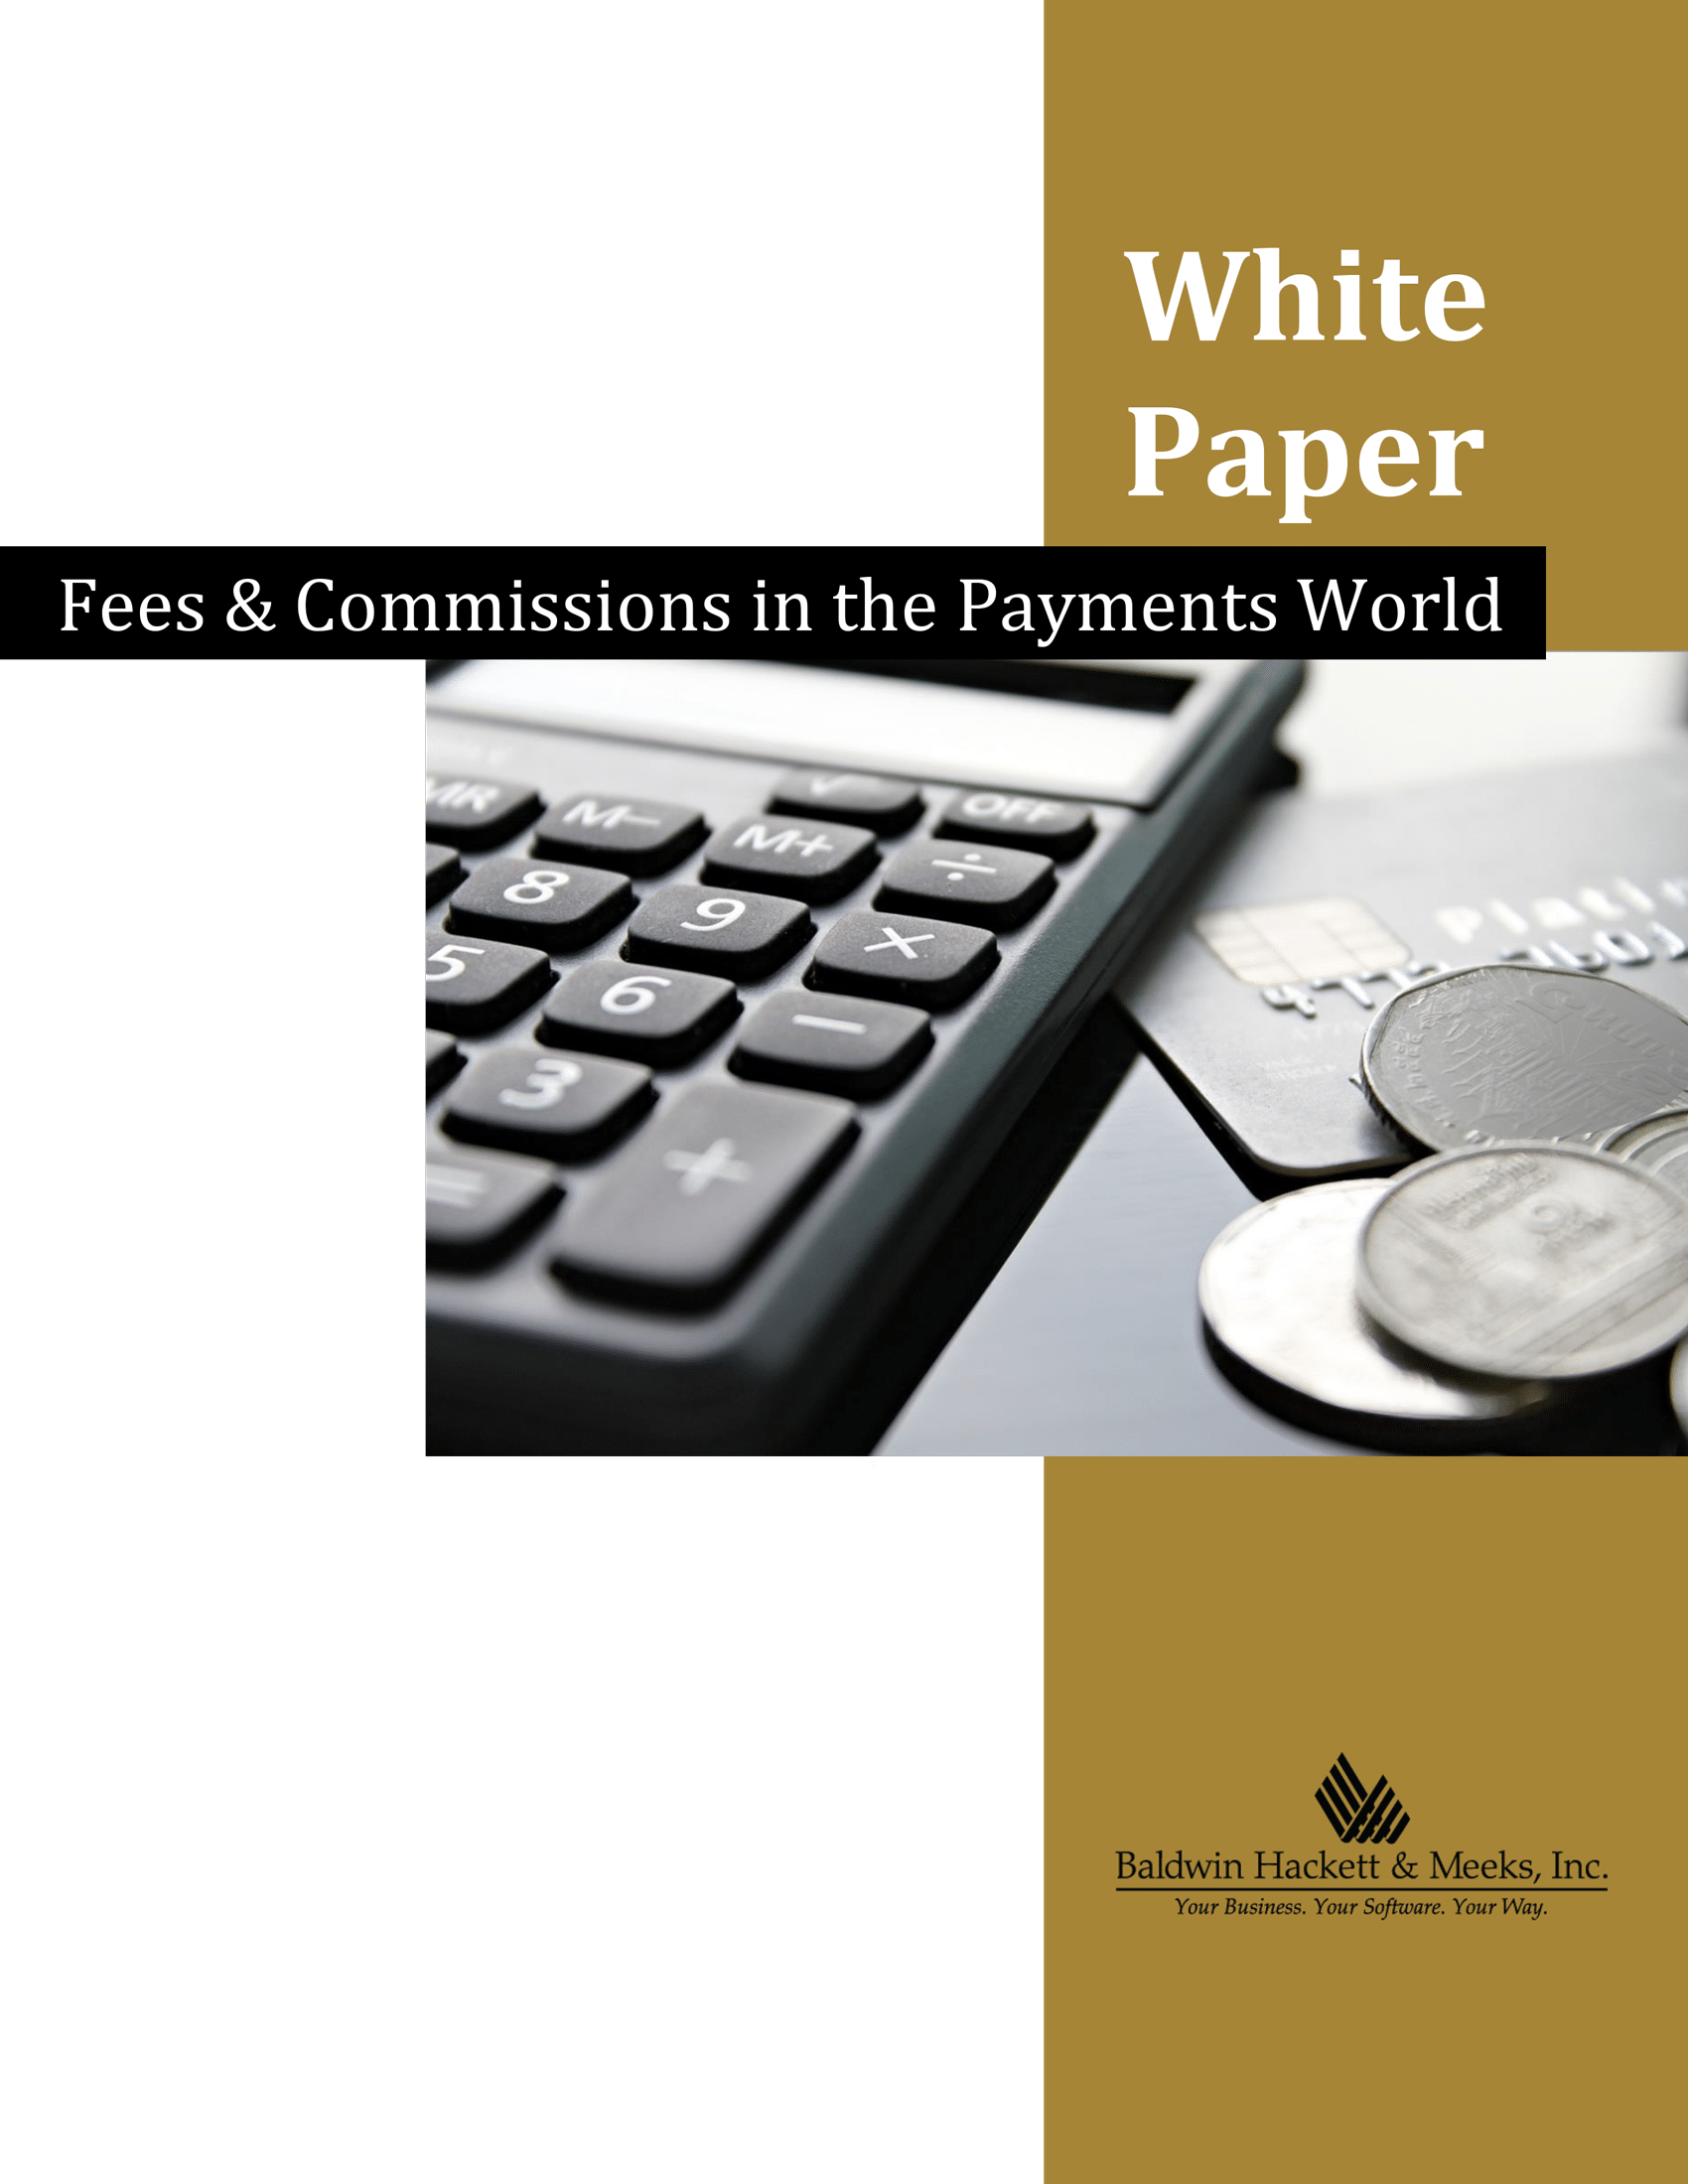 WHITE PAPER: FEES & COMMISSIONS IN THE PAYMENTS WORLD